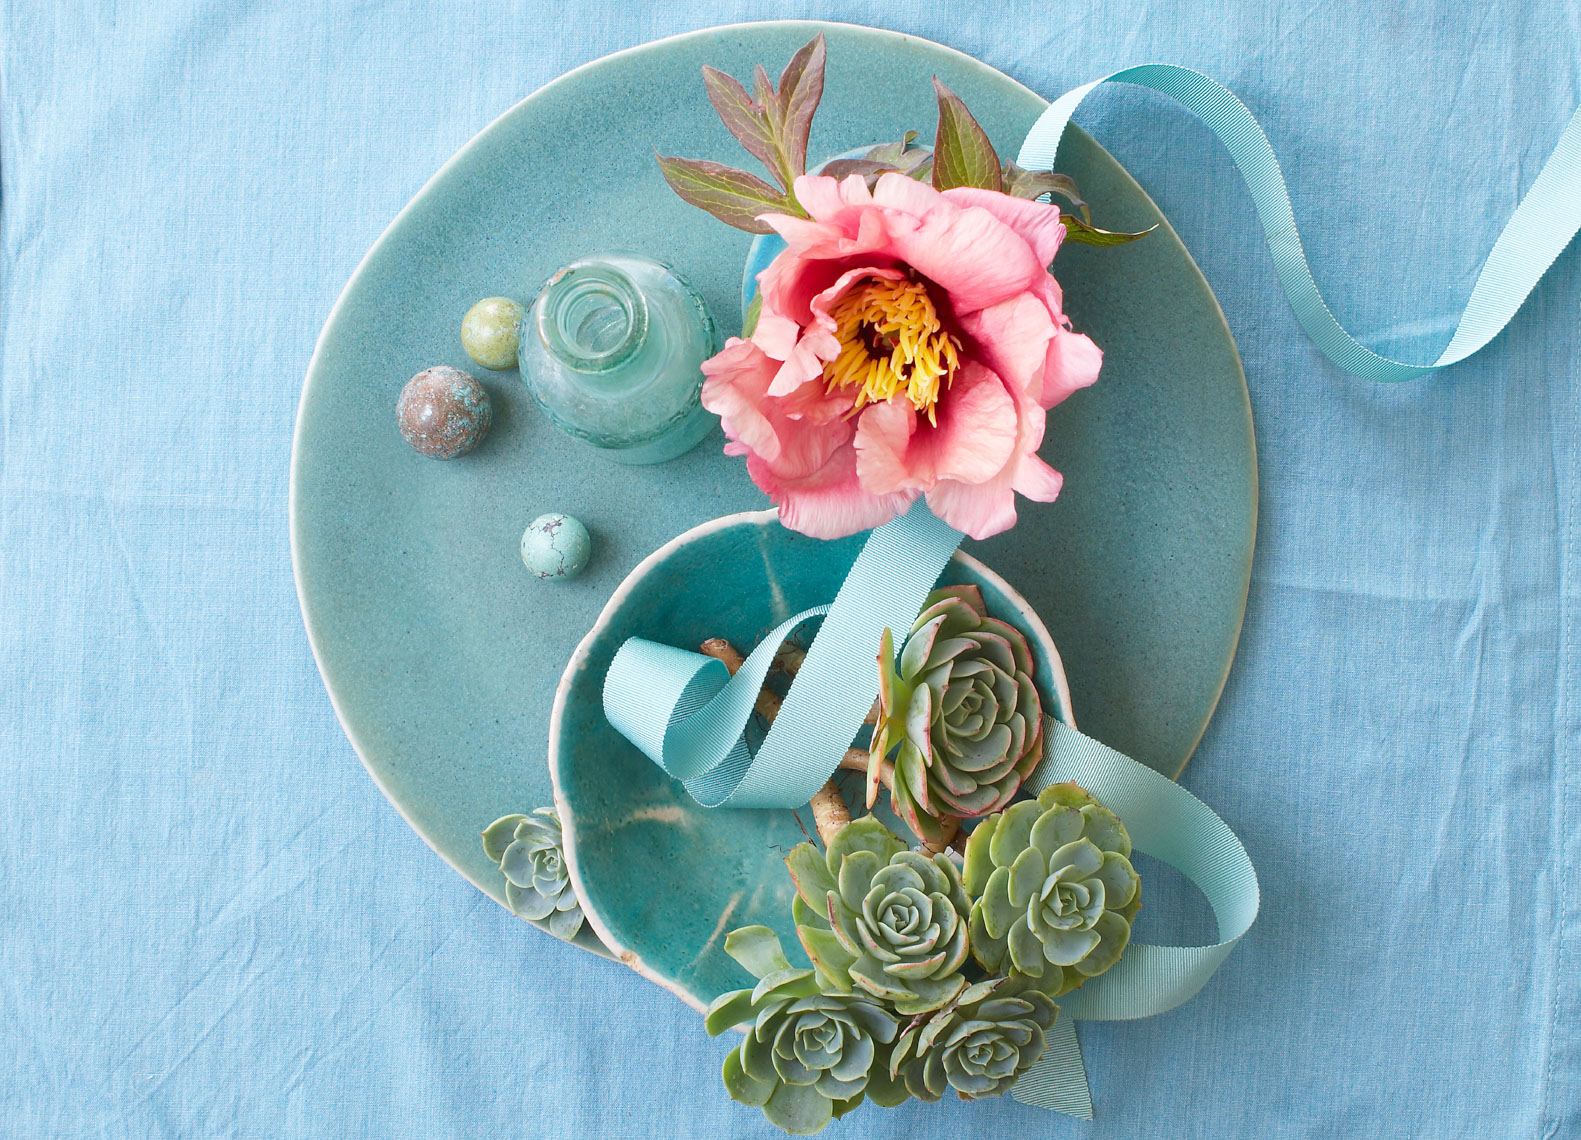 Flower and blue plate Still life Philip Harvey Photography, San Francisco, California, still life, interiors, lifestyle and product photography